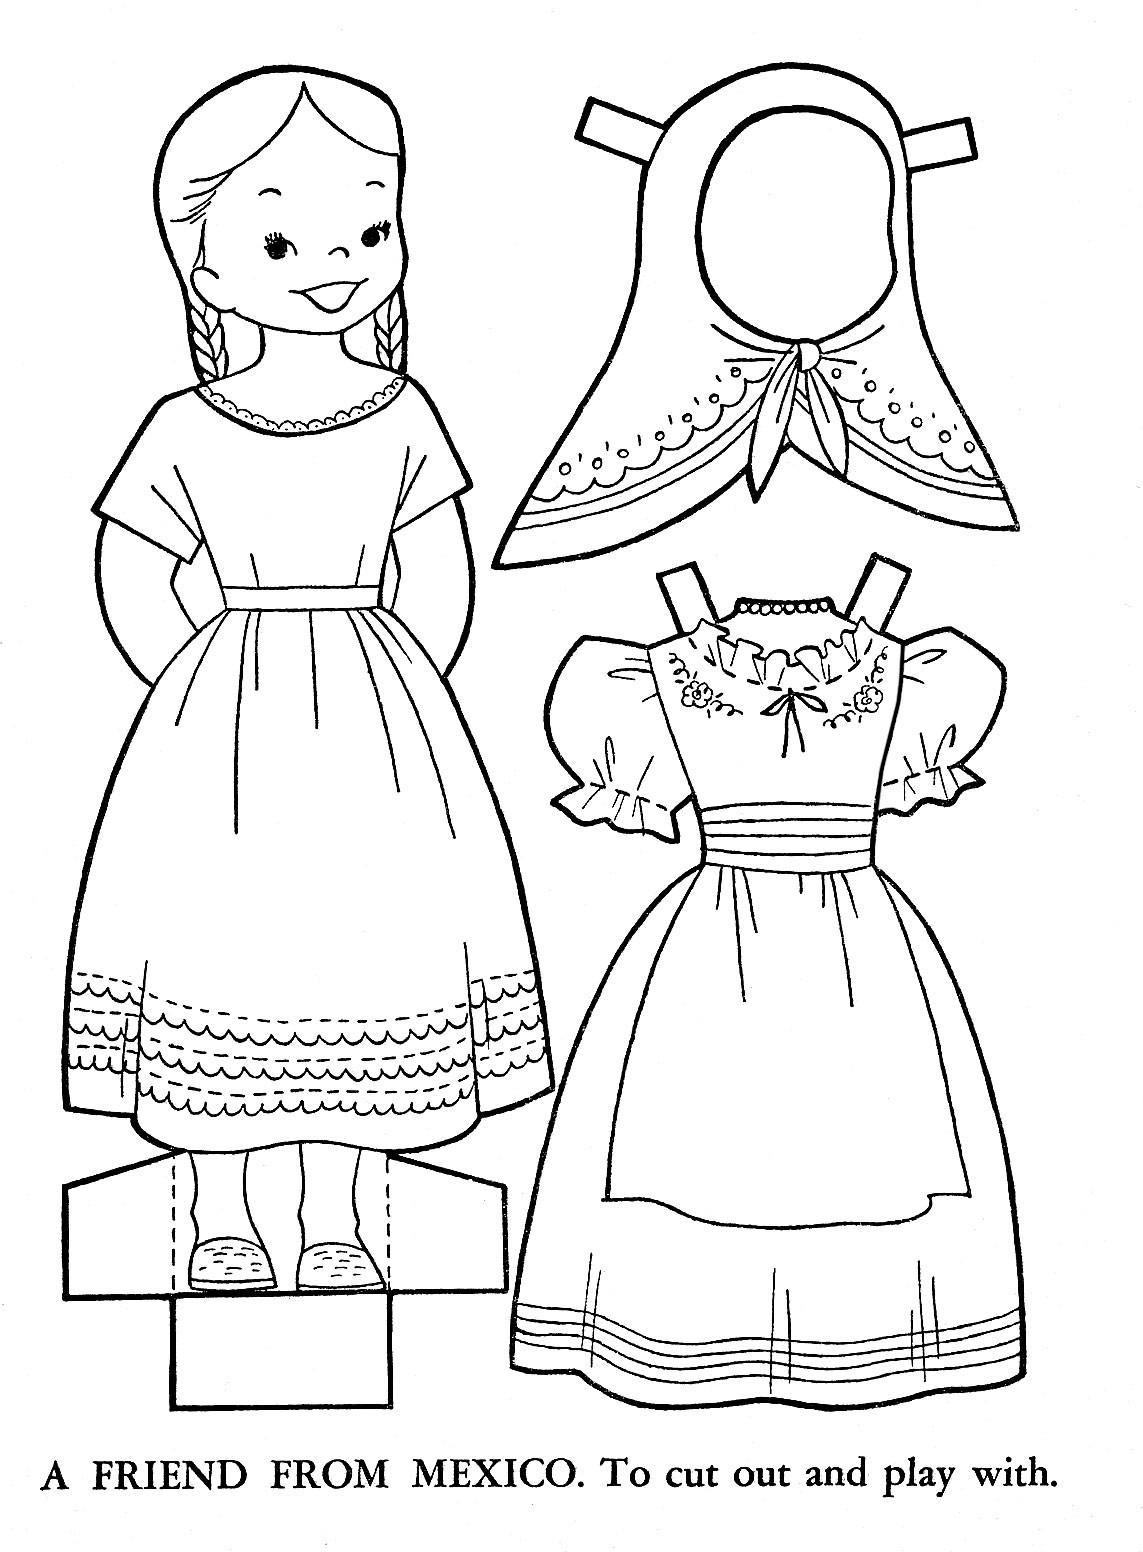 Argentina Coloring Pages For Kids  Argentina Coloring Pages Printable